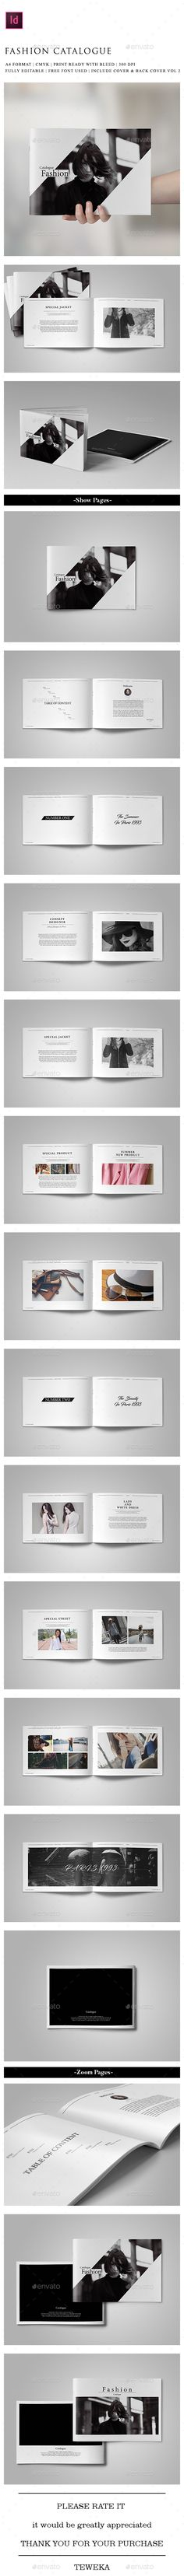 Fashion Catalogue Template InDesign INDD. Download here: https://graphicriver.net/item/fashion-catalogue/17562428?ref=ksioks